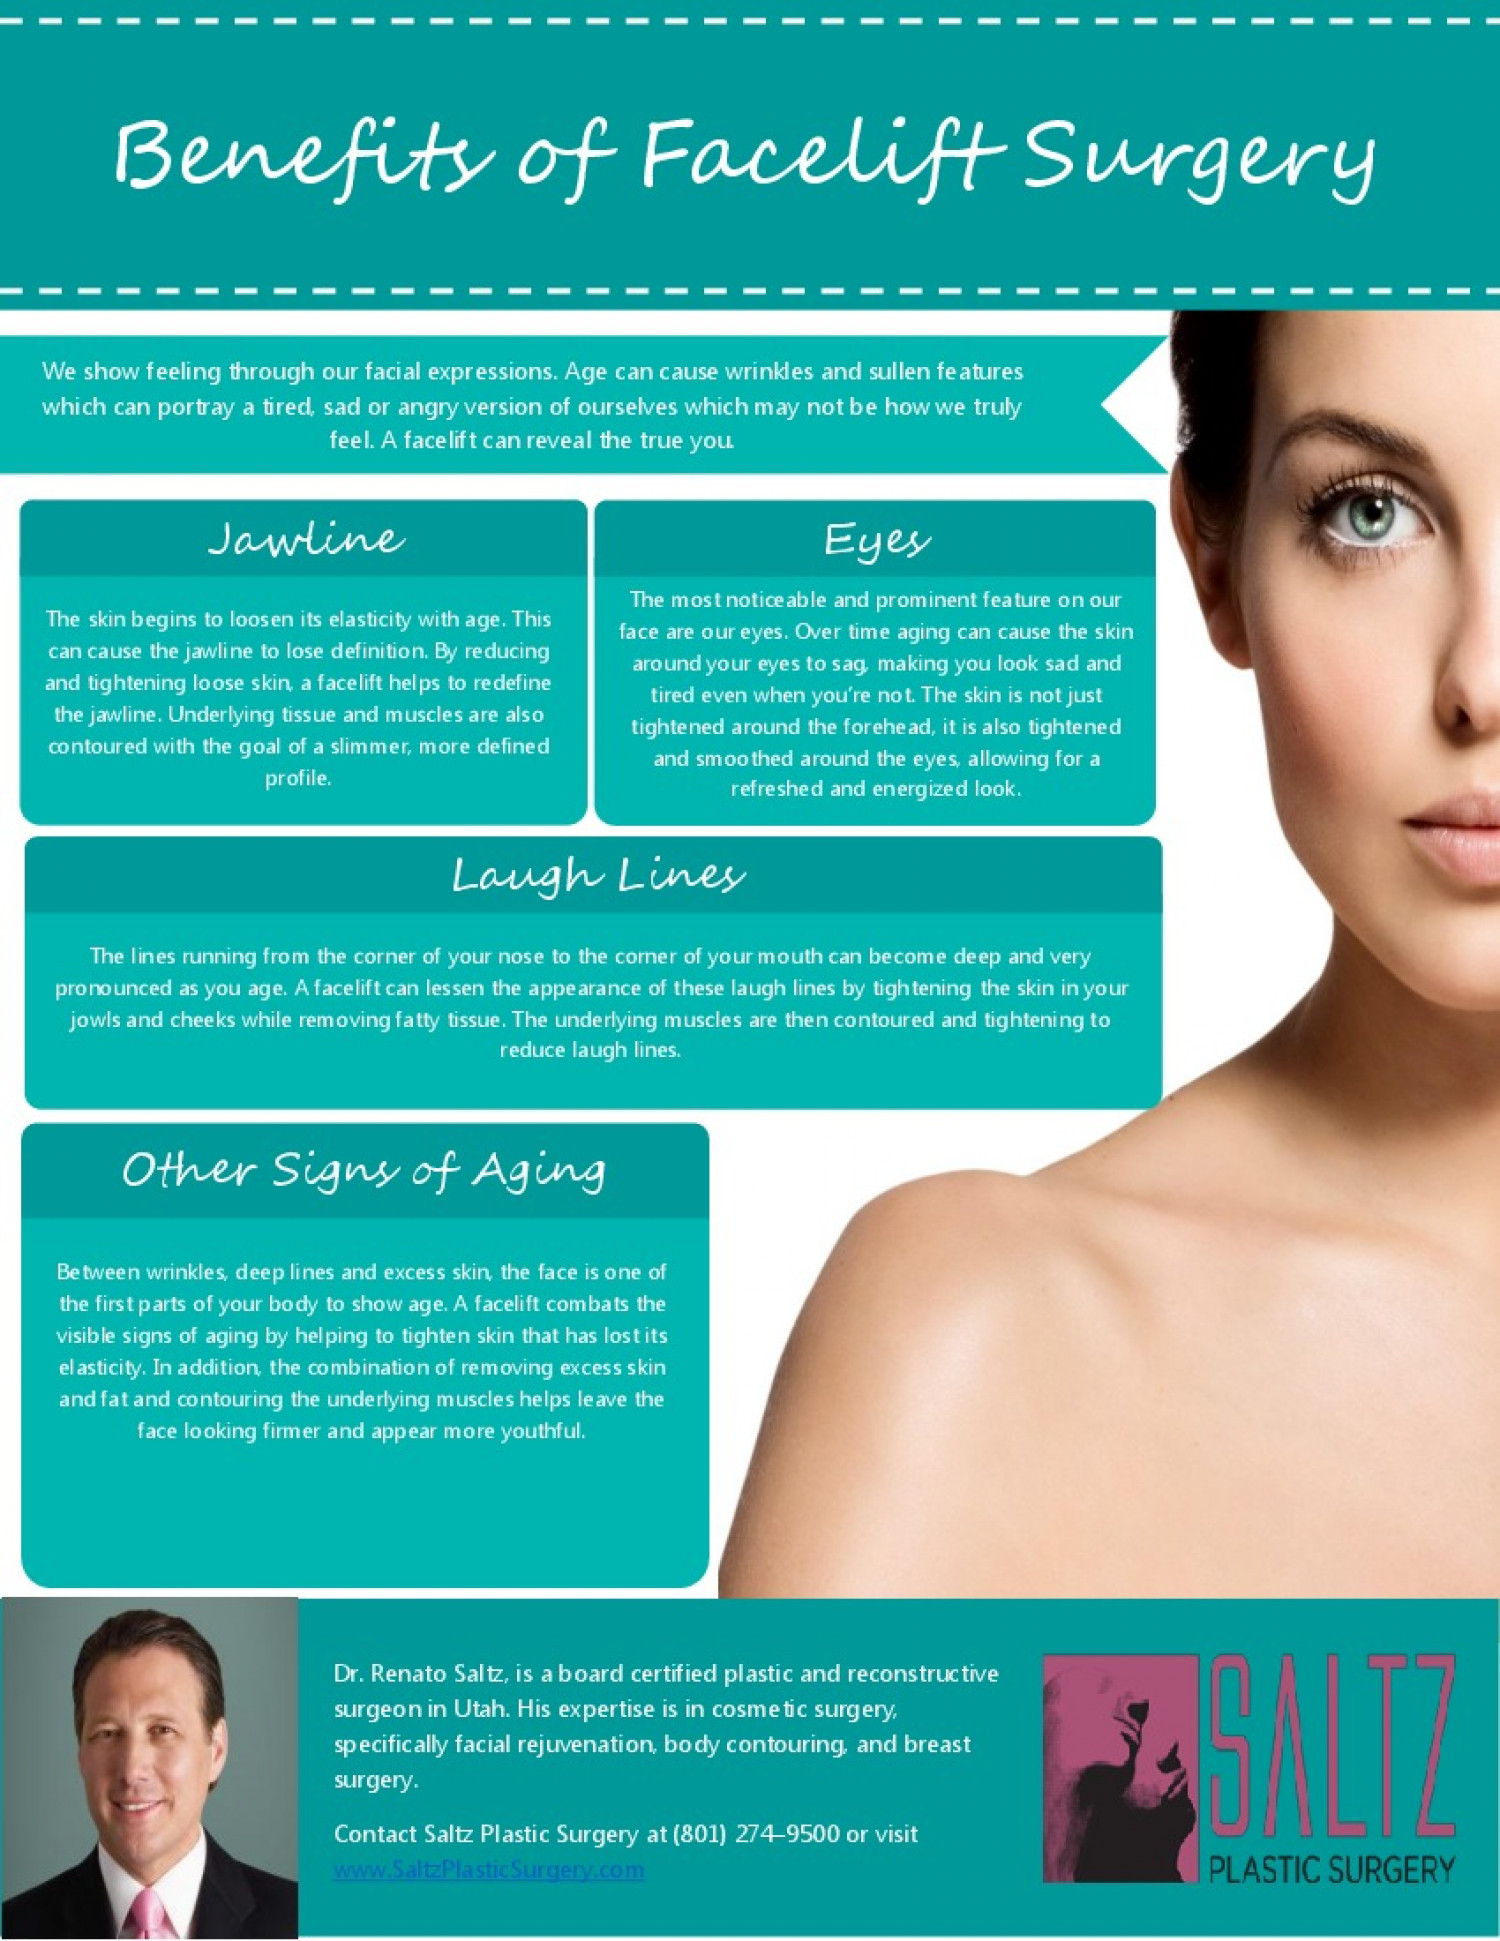 Benefits of Facelift Surgery Infographic